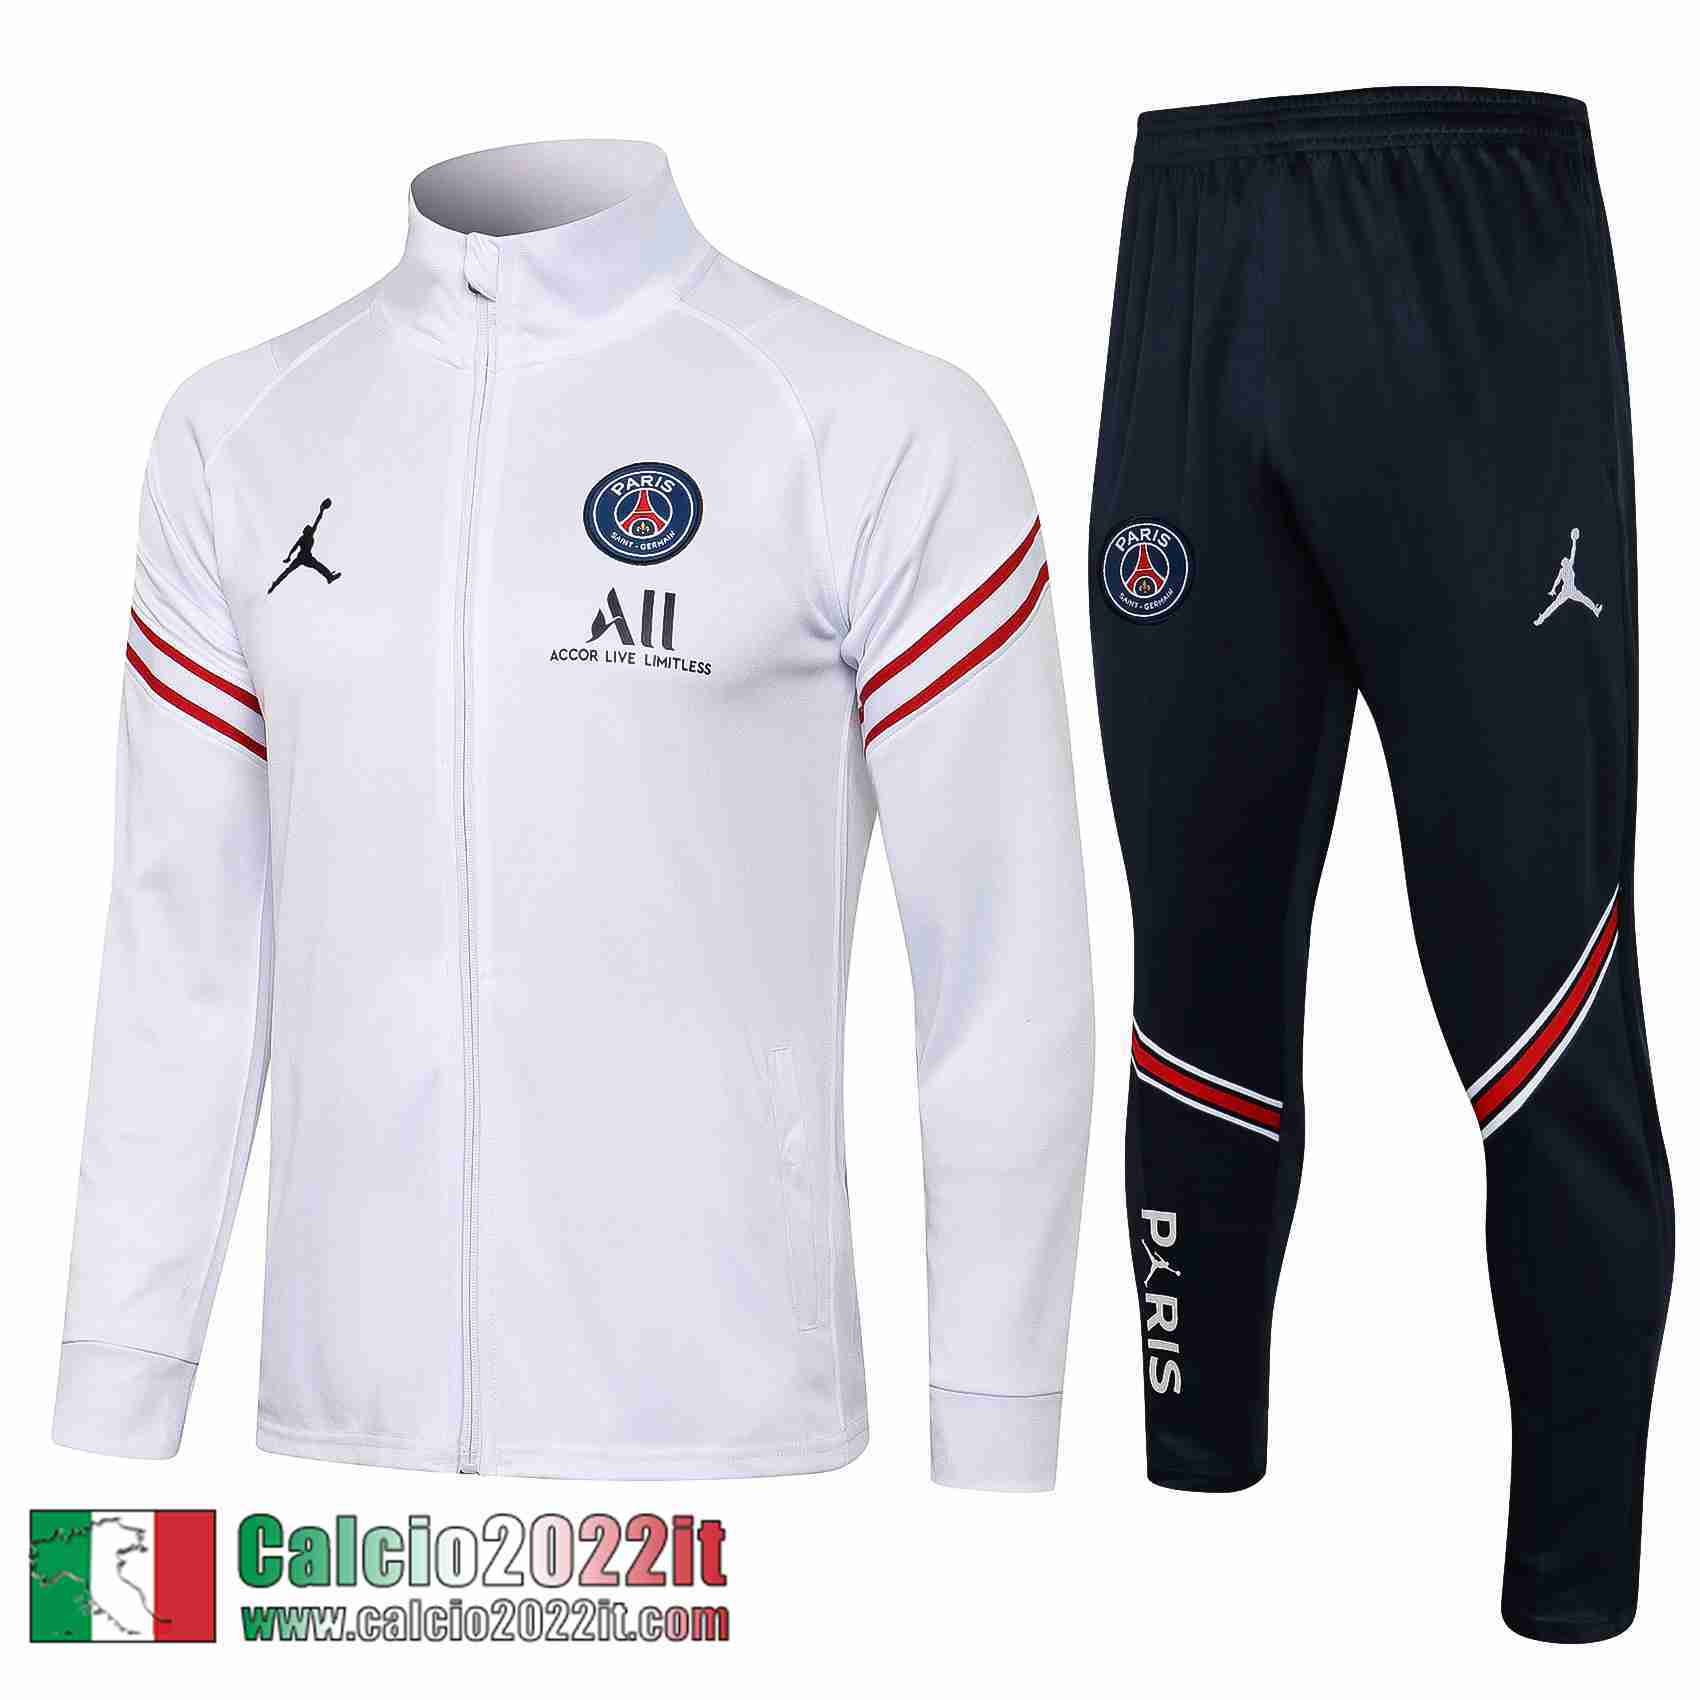 Paris Saint Germain Psg Air Jordan Full-Zip Giacca Bianca Jk05 2021 2022